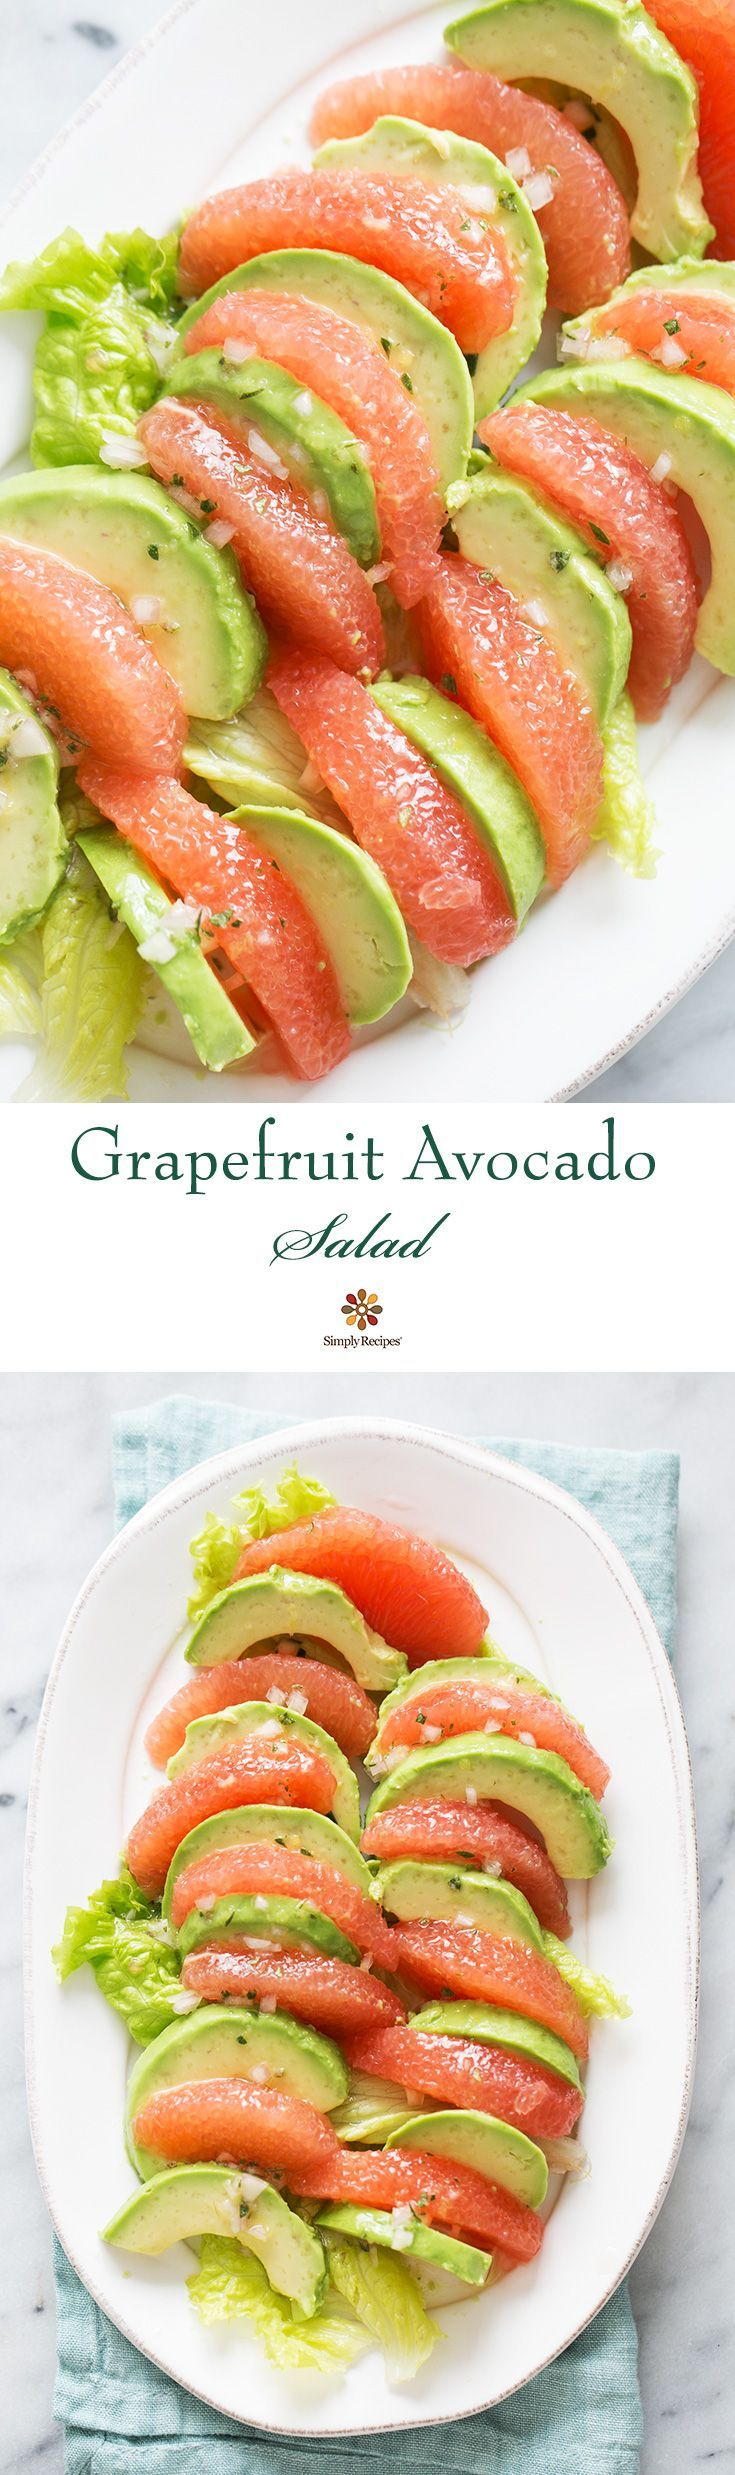 Grapefruit avocado salad! Healthy and delicious, grapefruit segments arranged with avocado slices, splashed with a citrus vinaigrette. Get the recipe on avocado salad! Healthy and delicious, grapefruit segments arranged with avocado slices, splashed with a citrus vinaigrette. Get the recipe on